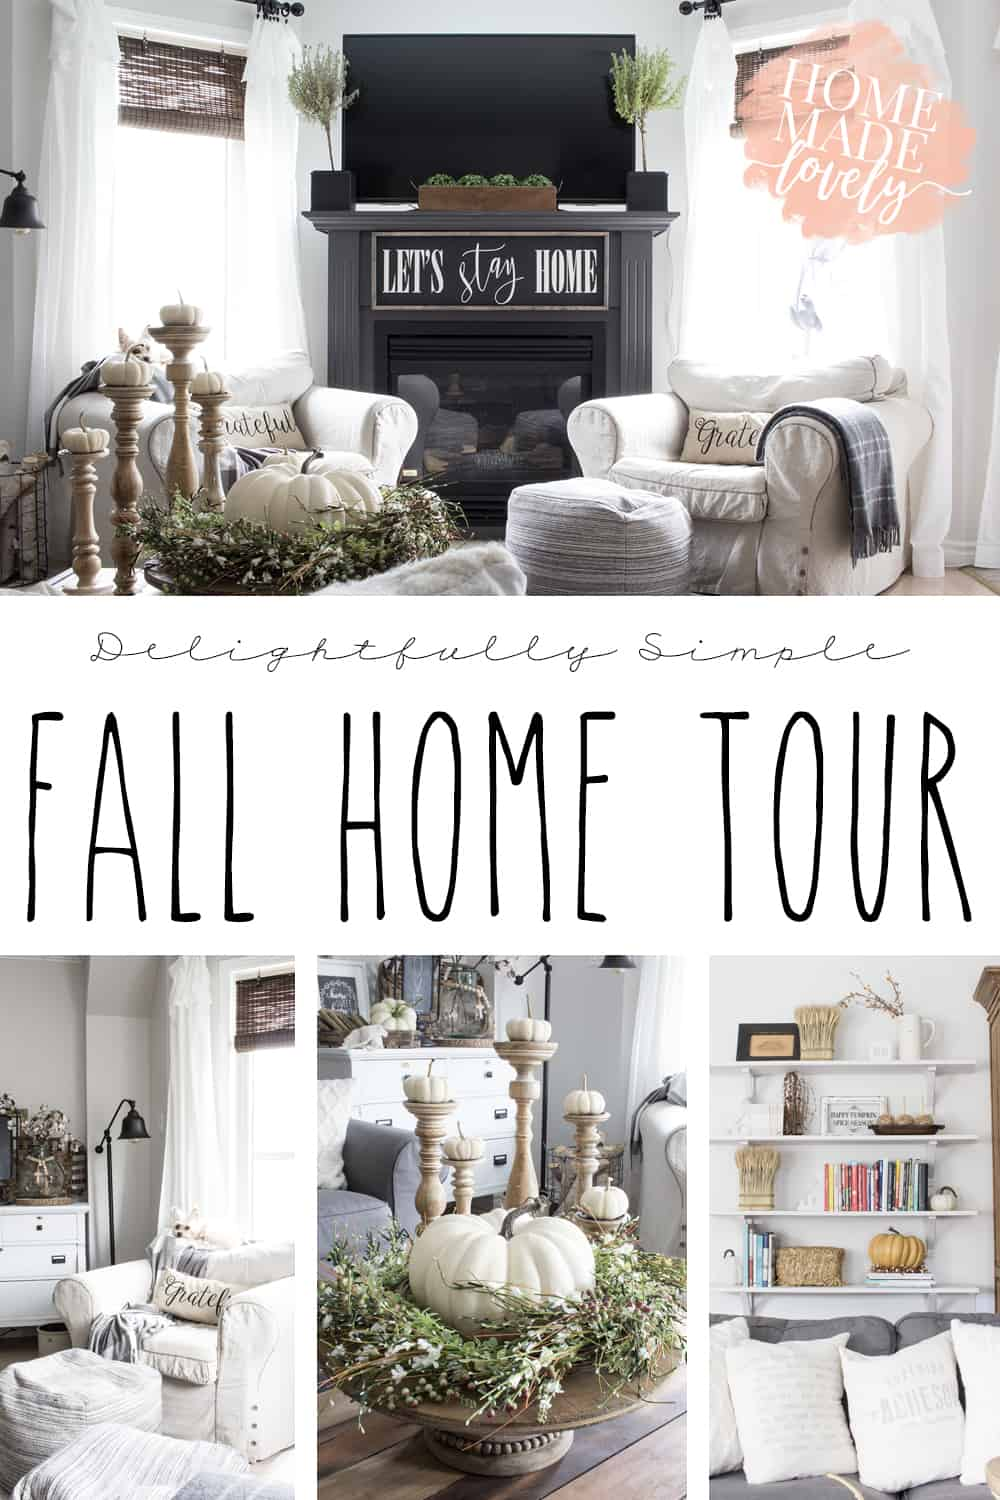 This year I was craving a little more simplicity in our fall decor. So, for our fall home tour, I kept things really quite simple and neutral.